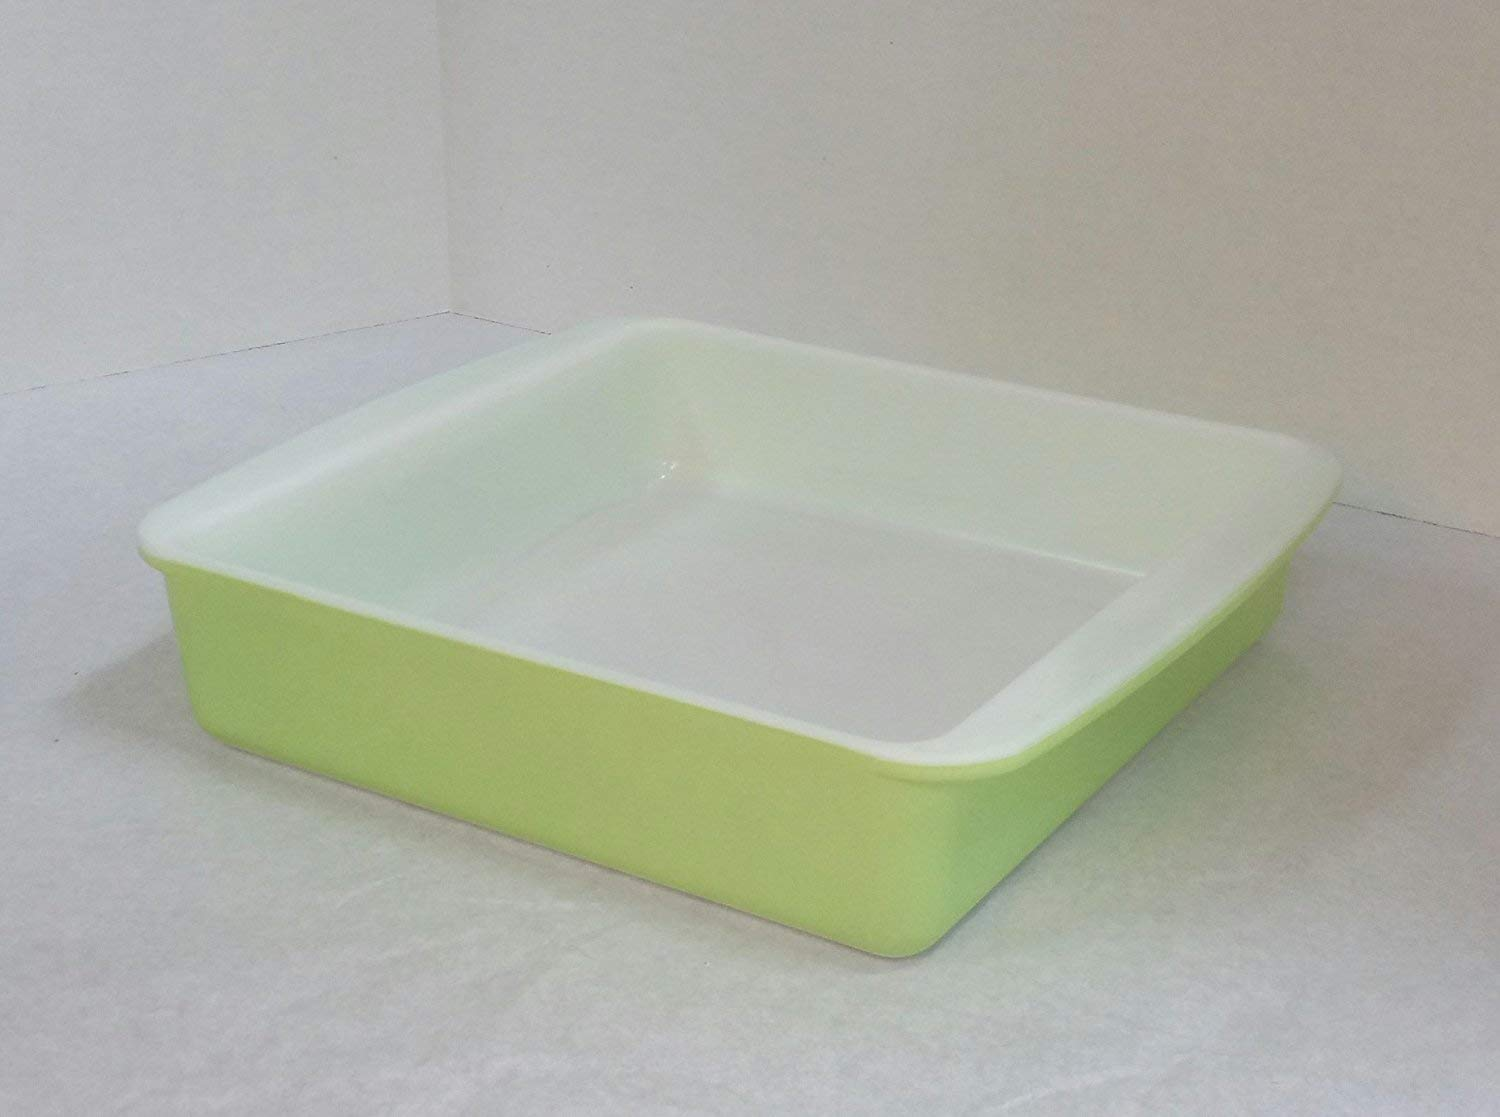 Get Quotations Vintage Pyrex 222 Square Baking Dish 8 Inches Light Green